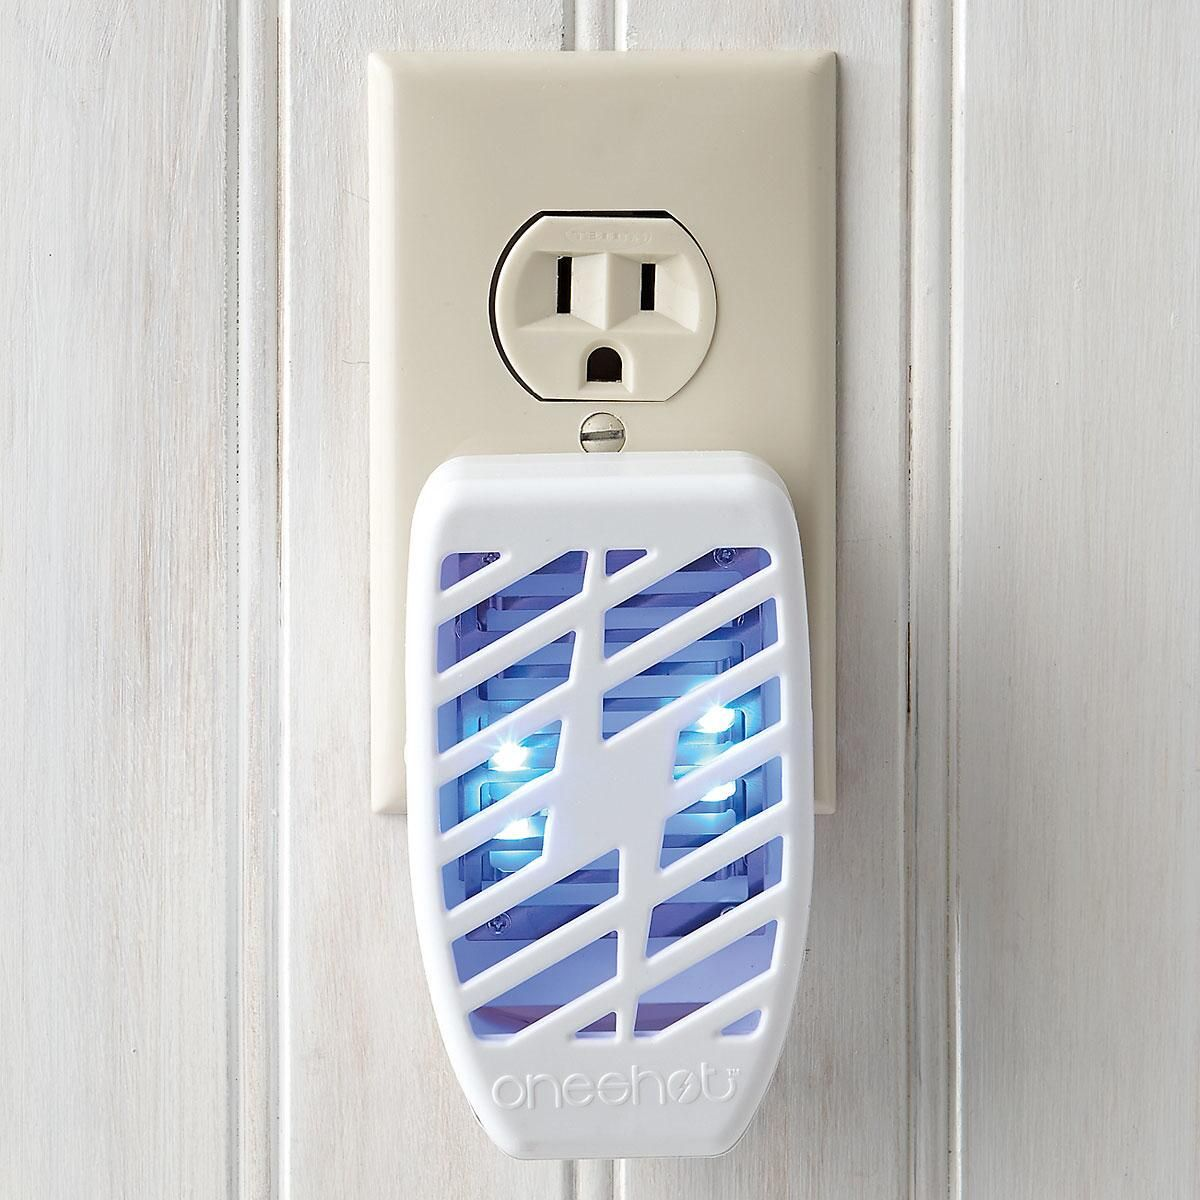 Plug-In Home Zapper